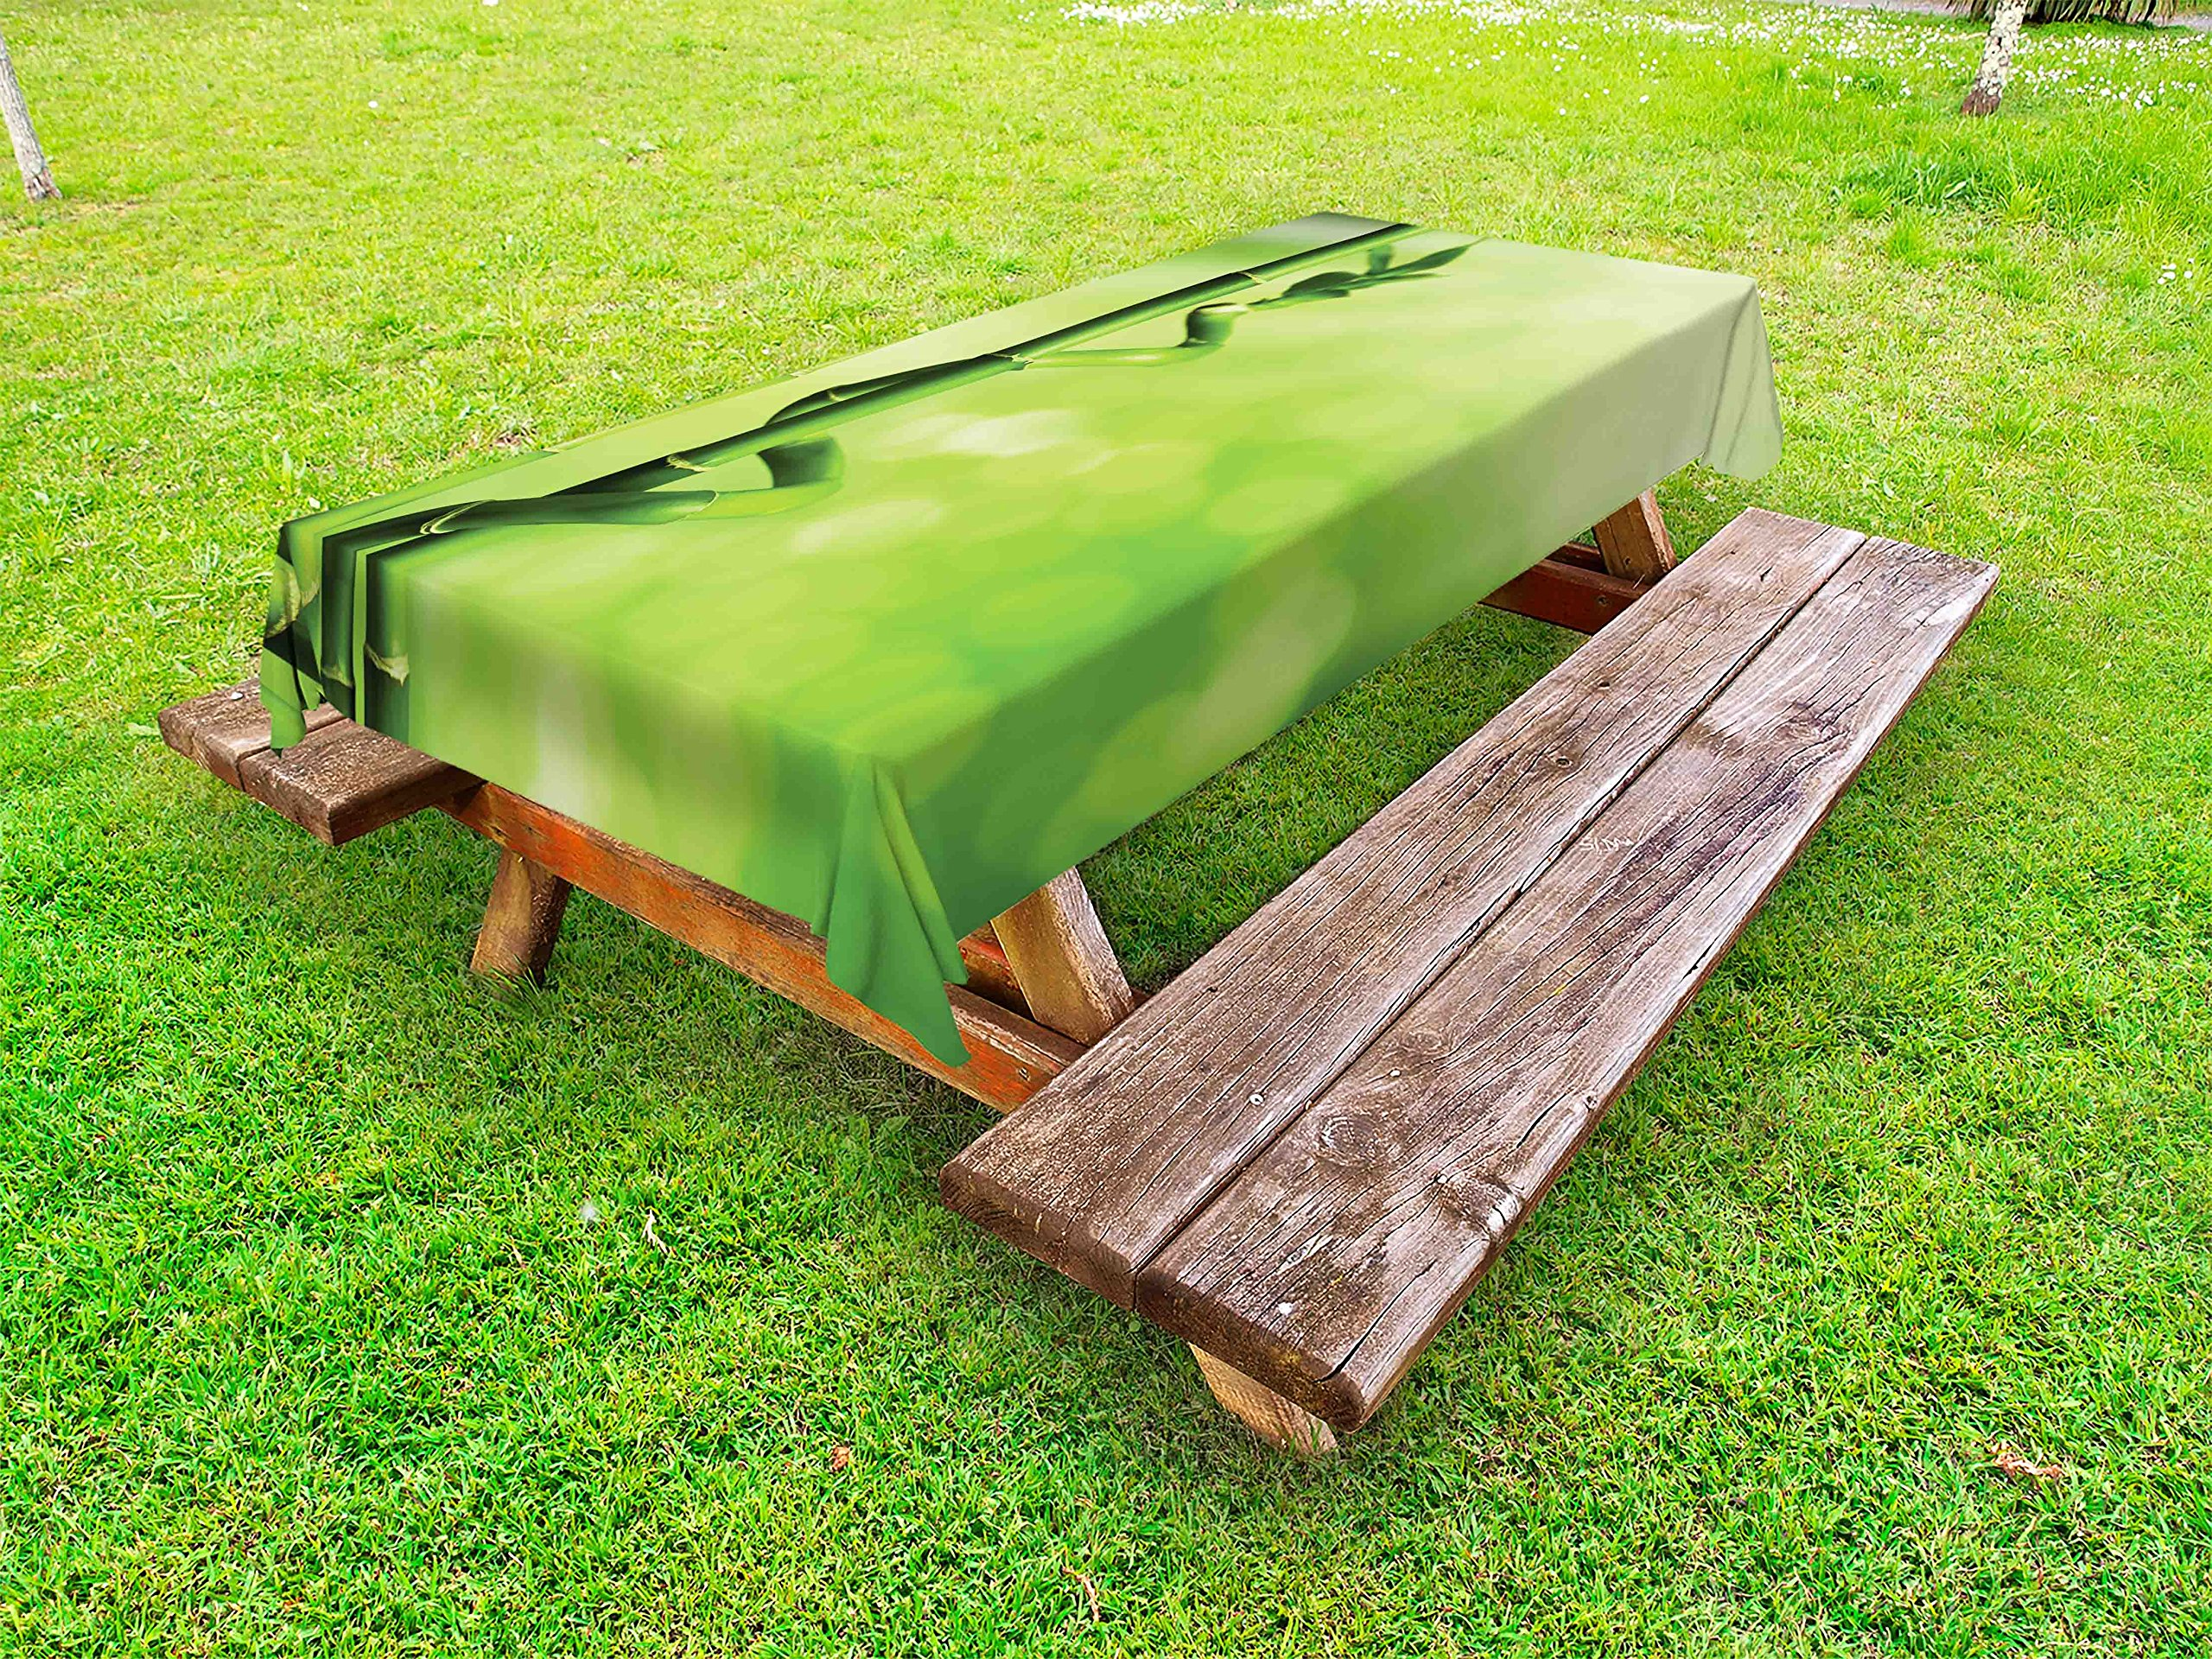 Lunarable Green Outdoor Tablecloth, Bamboo Stems Nature Ecology Sunbeams Soft Spring Scenic Spa Health Relaxation, Decorative Washable Picnic Table Cloth, 58 X 104 inches, Green Pale Green